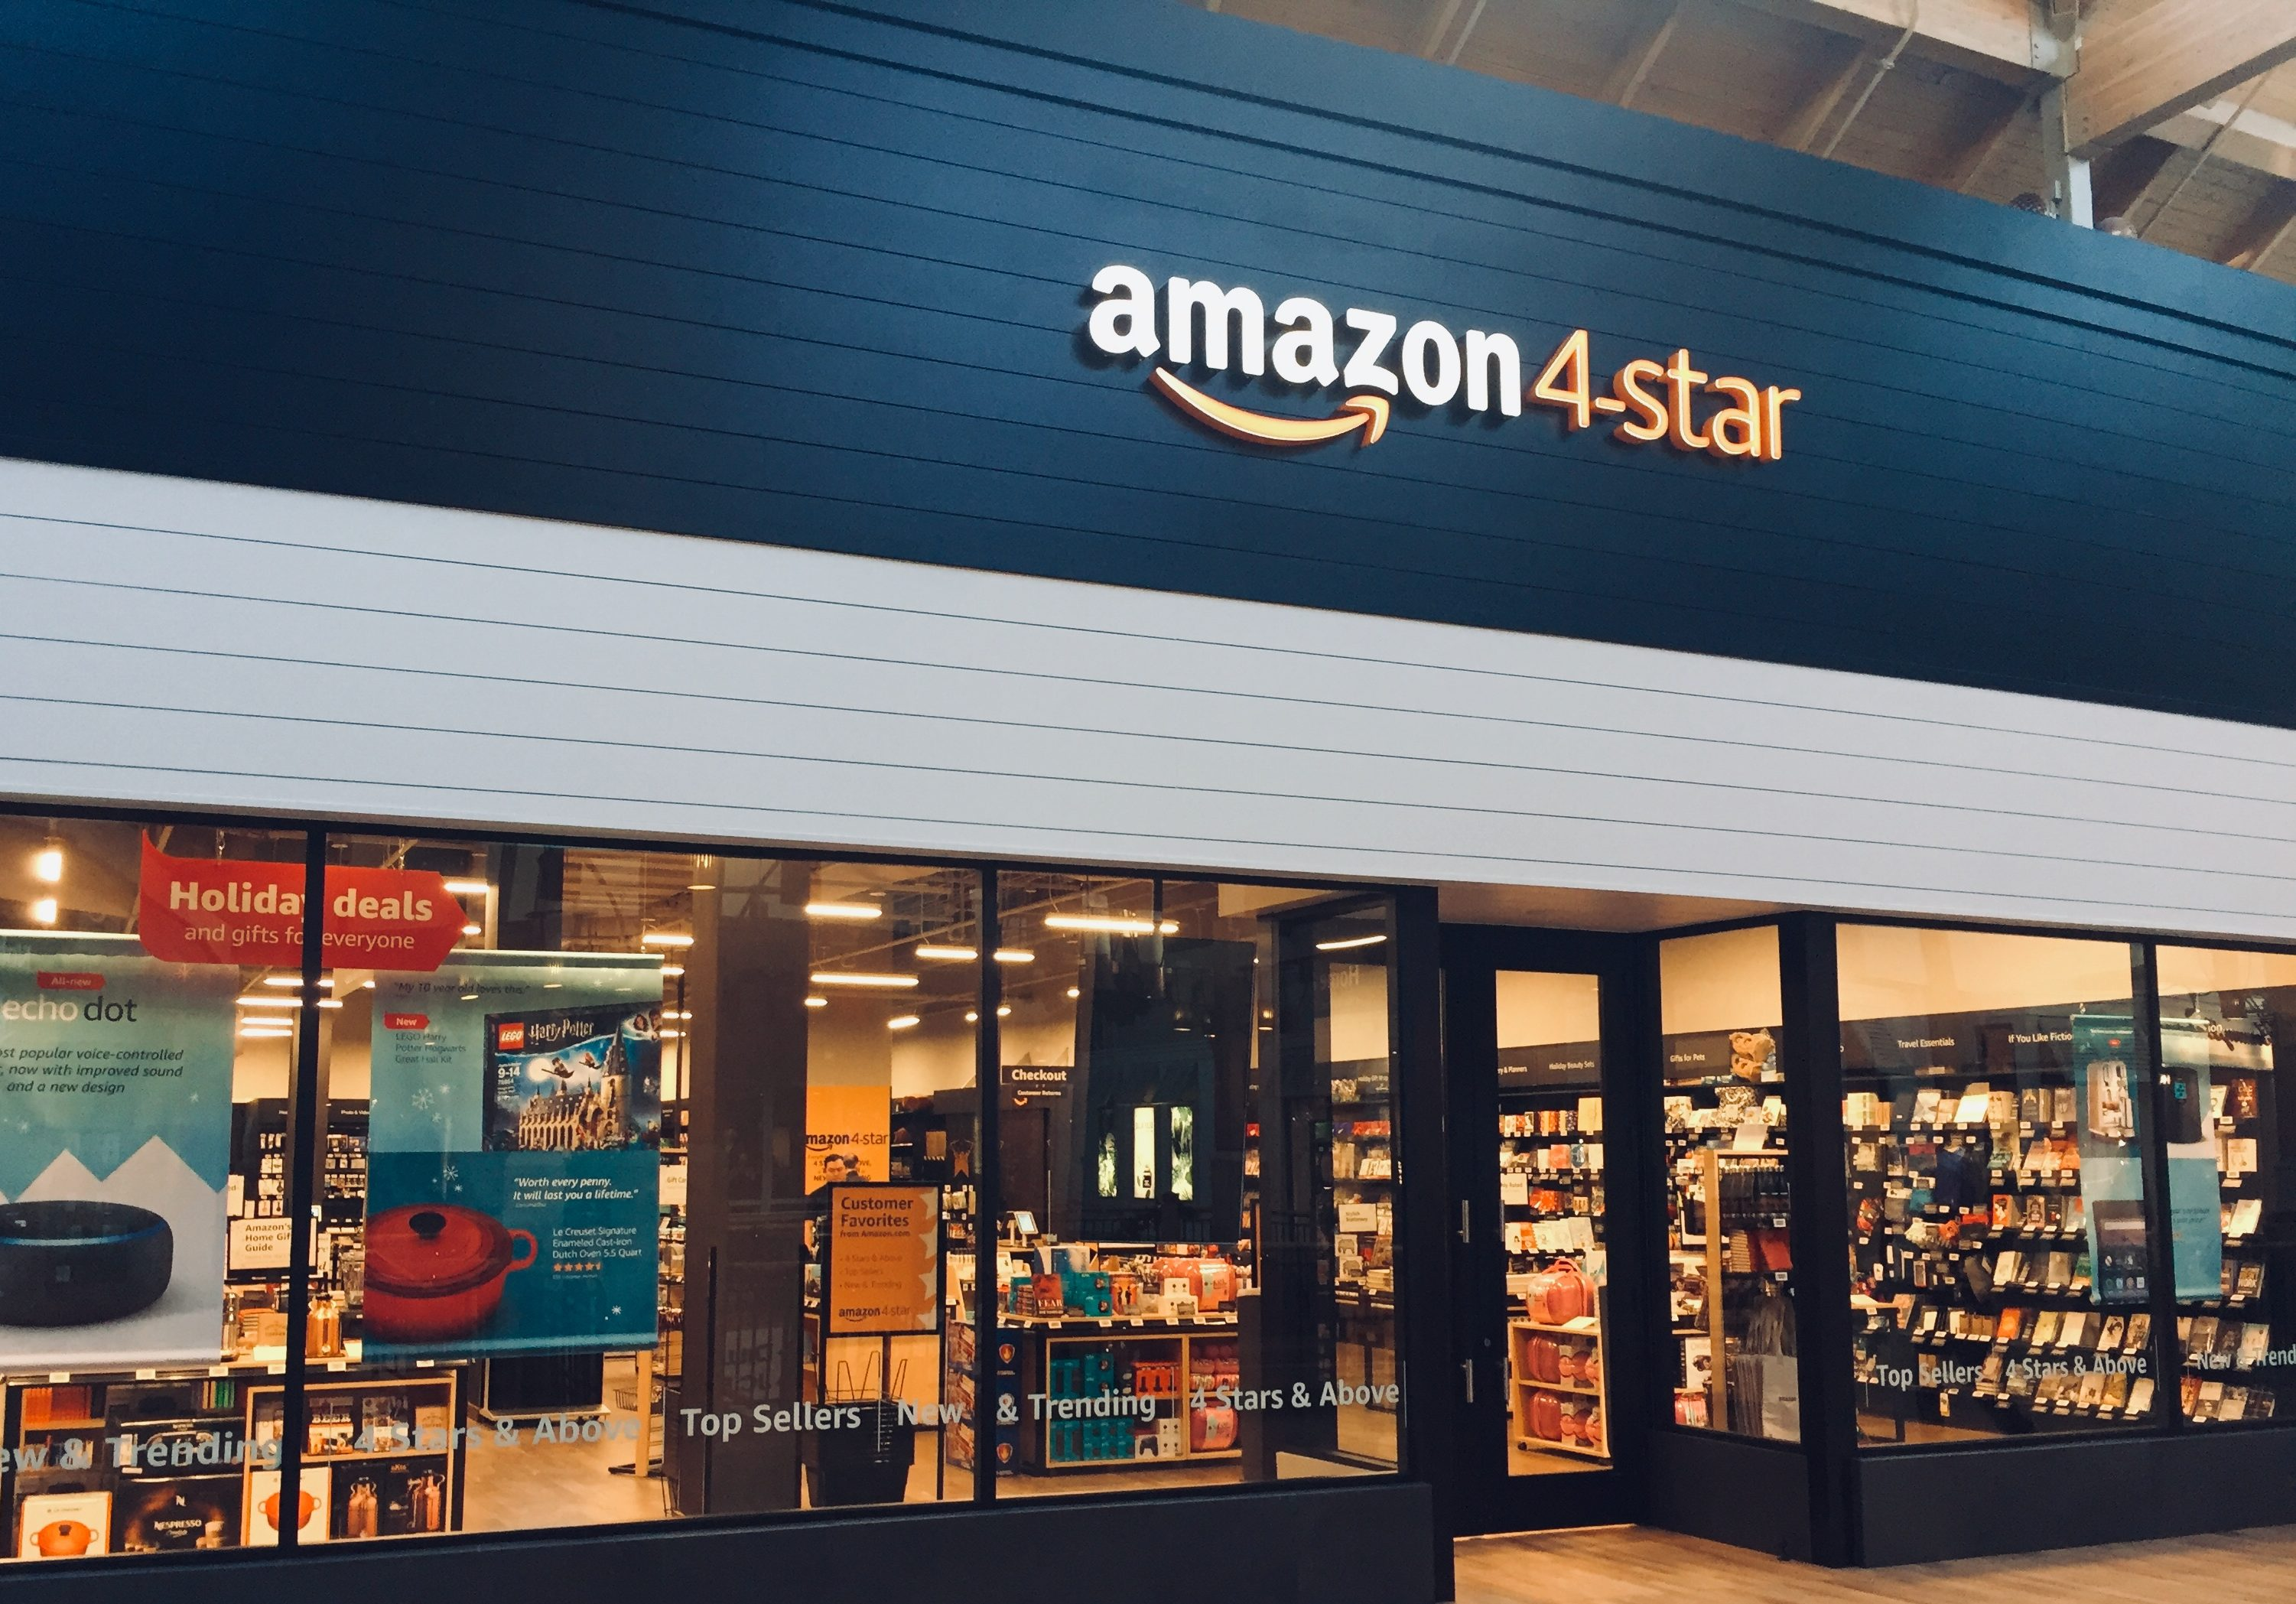 The Amazon-4 Star Store Curates Products Based on Reviews